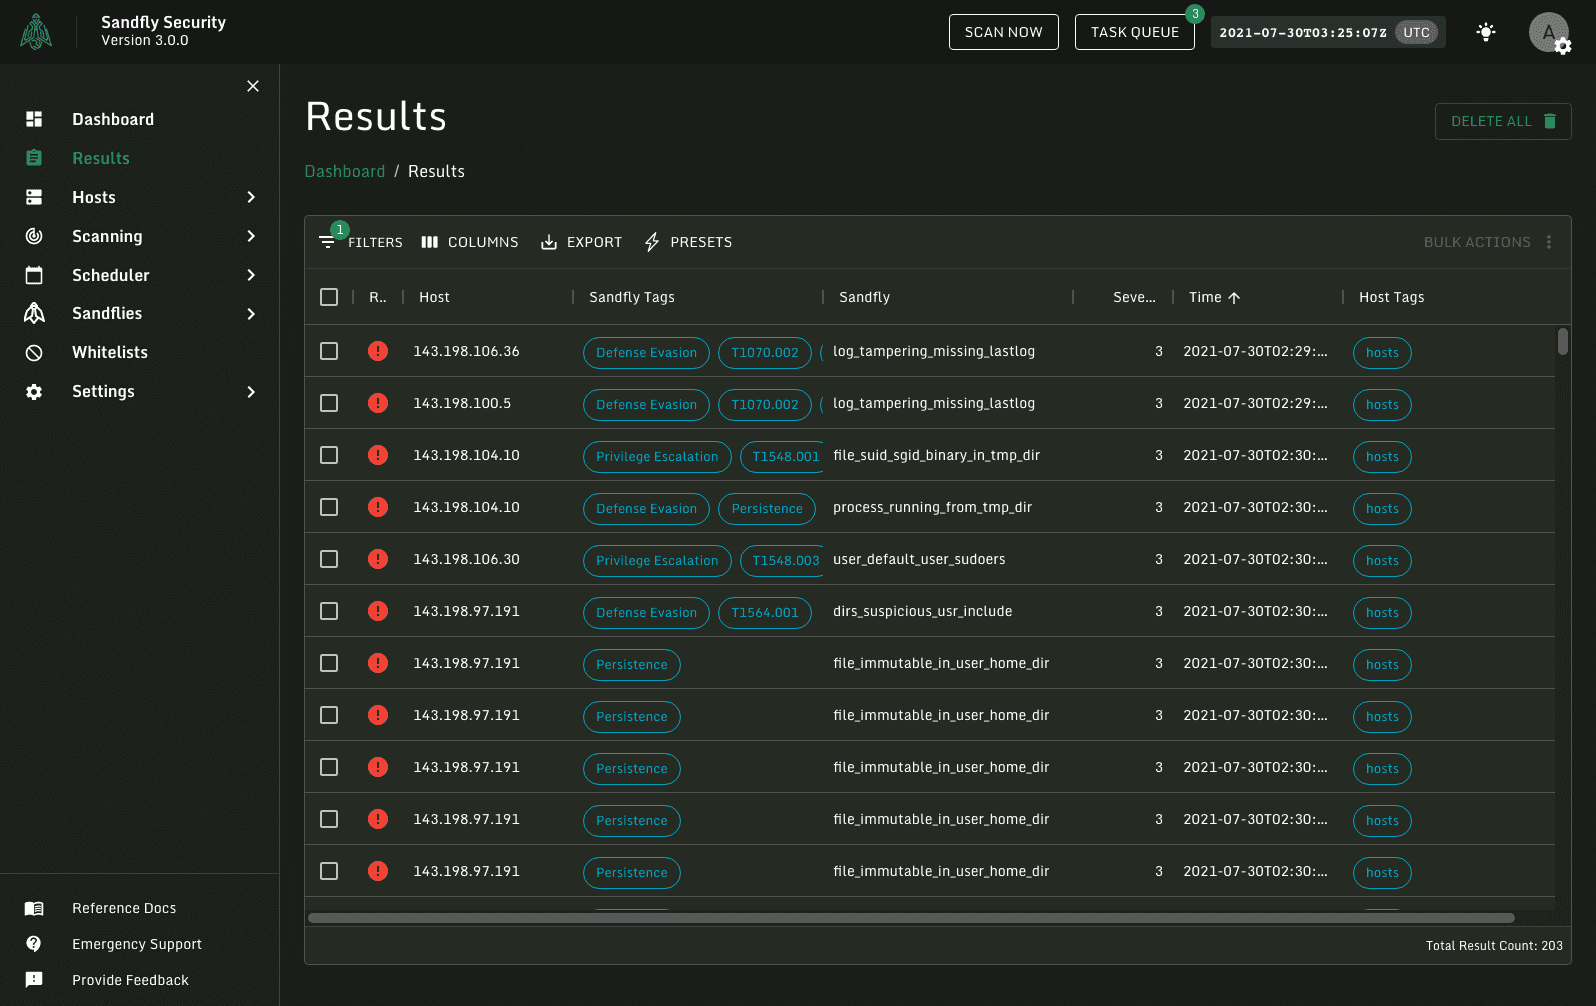 Viewing all alerts